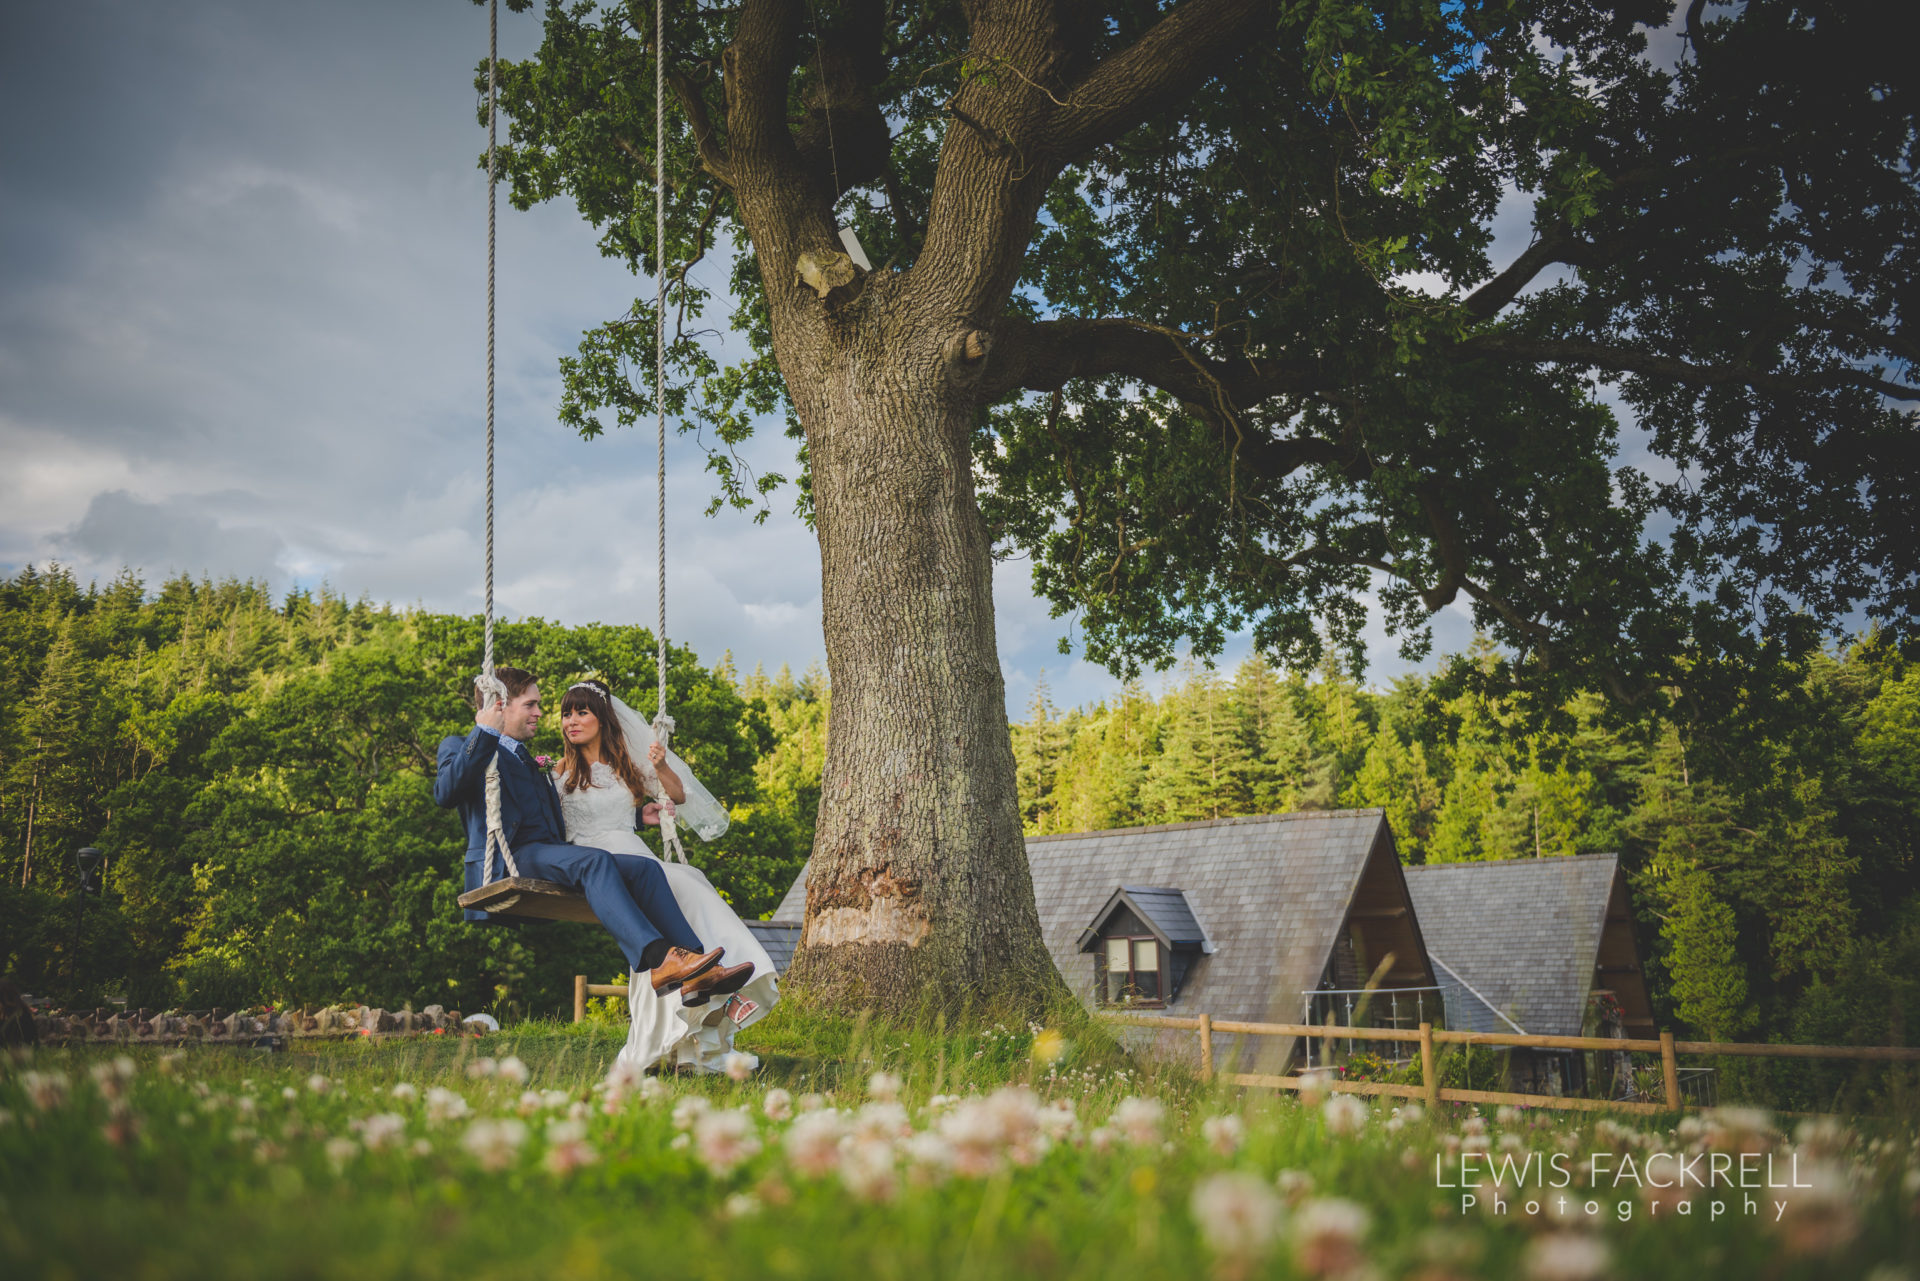 Lewis-Fackrell-Photography-Wedding-Photographer-Cardiff-Swansea-Bristol-Newport-Pre-wedding-photoshoot-cerian-dan-canada-lake-lodge-llantrisant--96